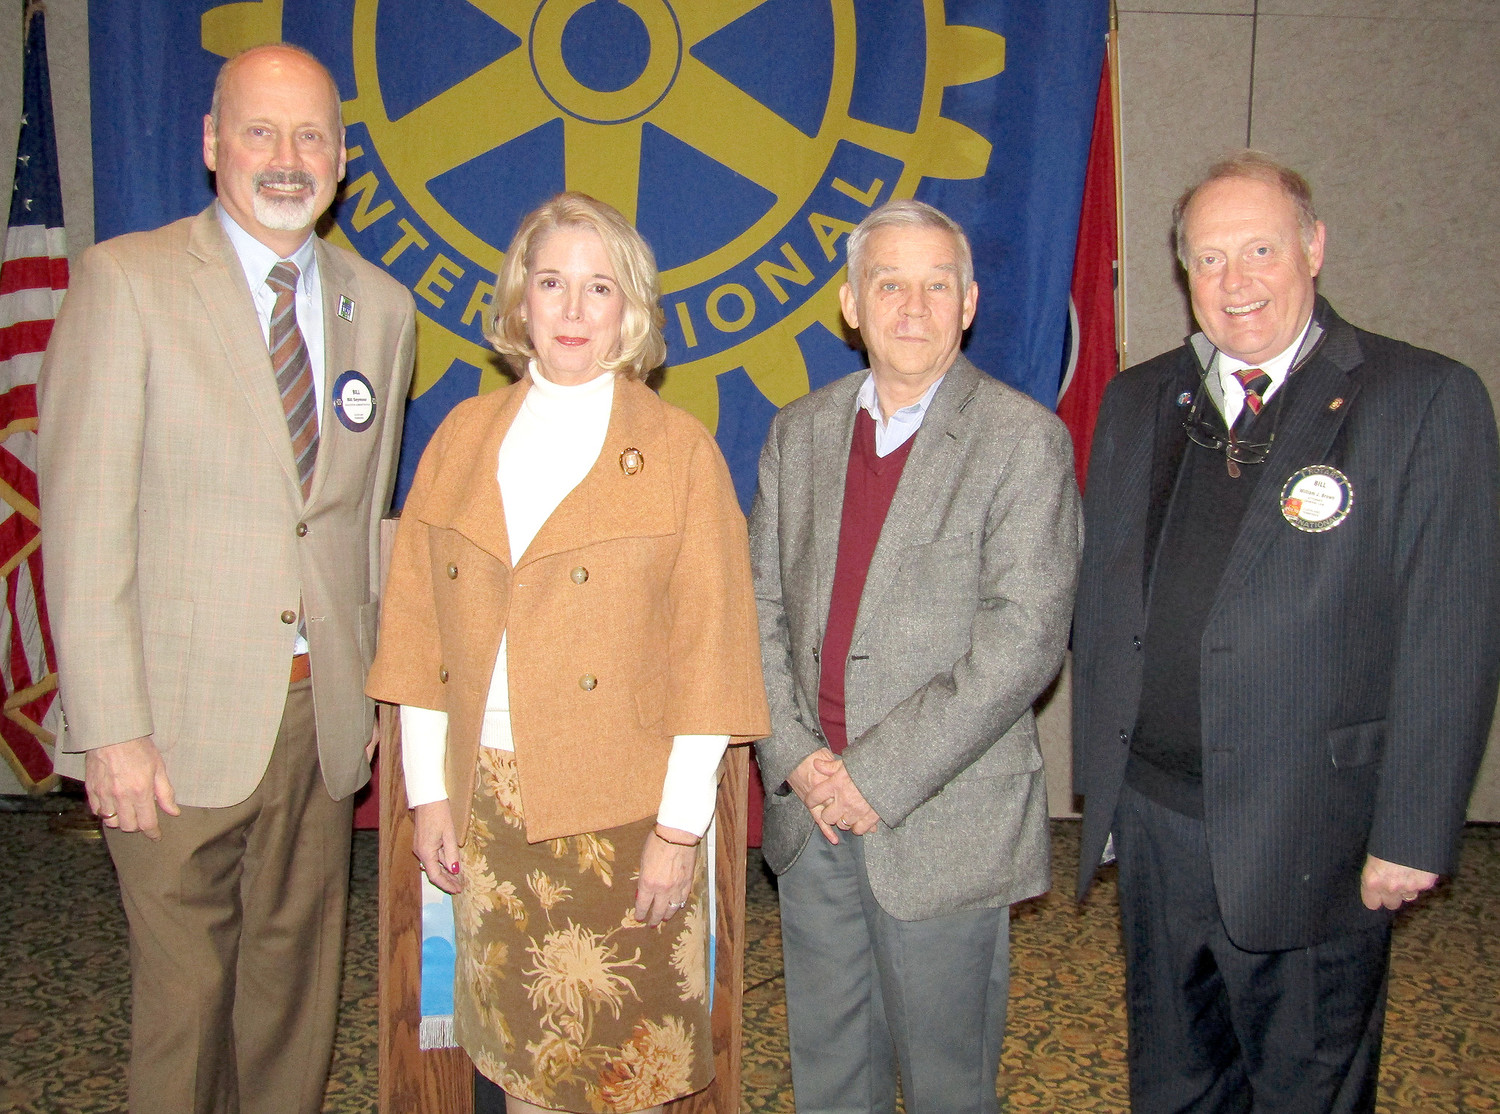 TENNESSEE BOARD OF REGENTS Chancellor Dr. Flora Tydings, second from left, recently addressed the Rotary Club of Cleveland about higher education at the state and local levels. From left are Cleveland State President Dr. Bill Seymour, Tydings, TBR member Tom Griscom, and Rotary President Bill Brown.